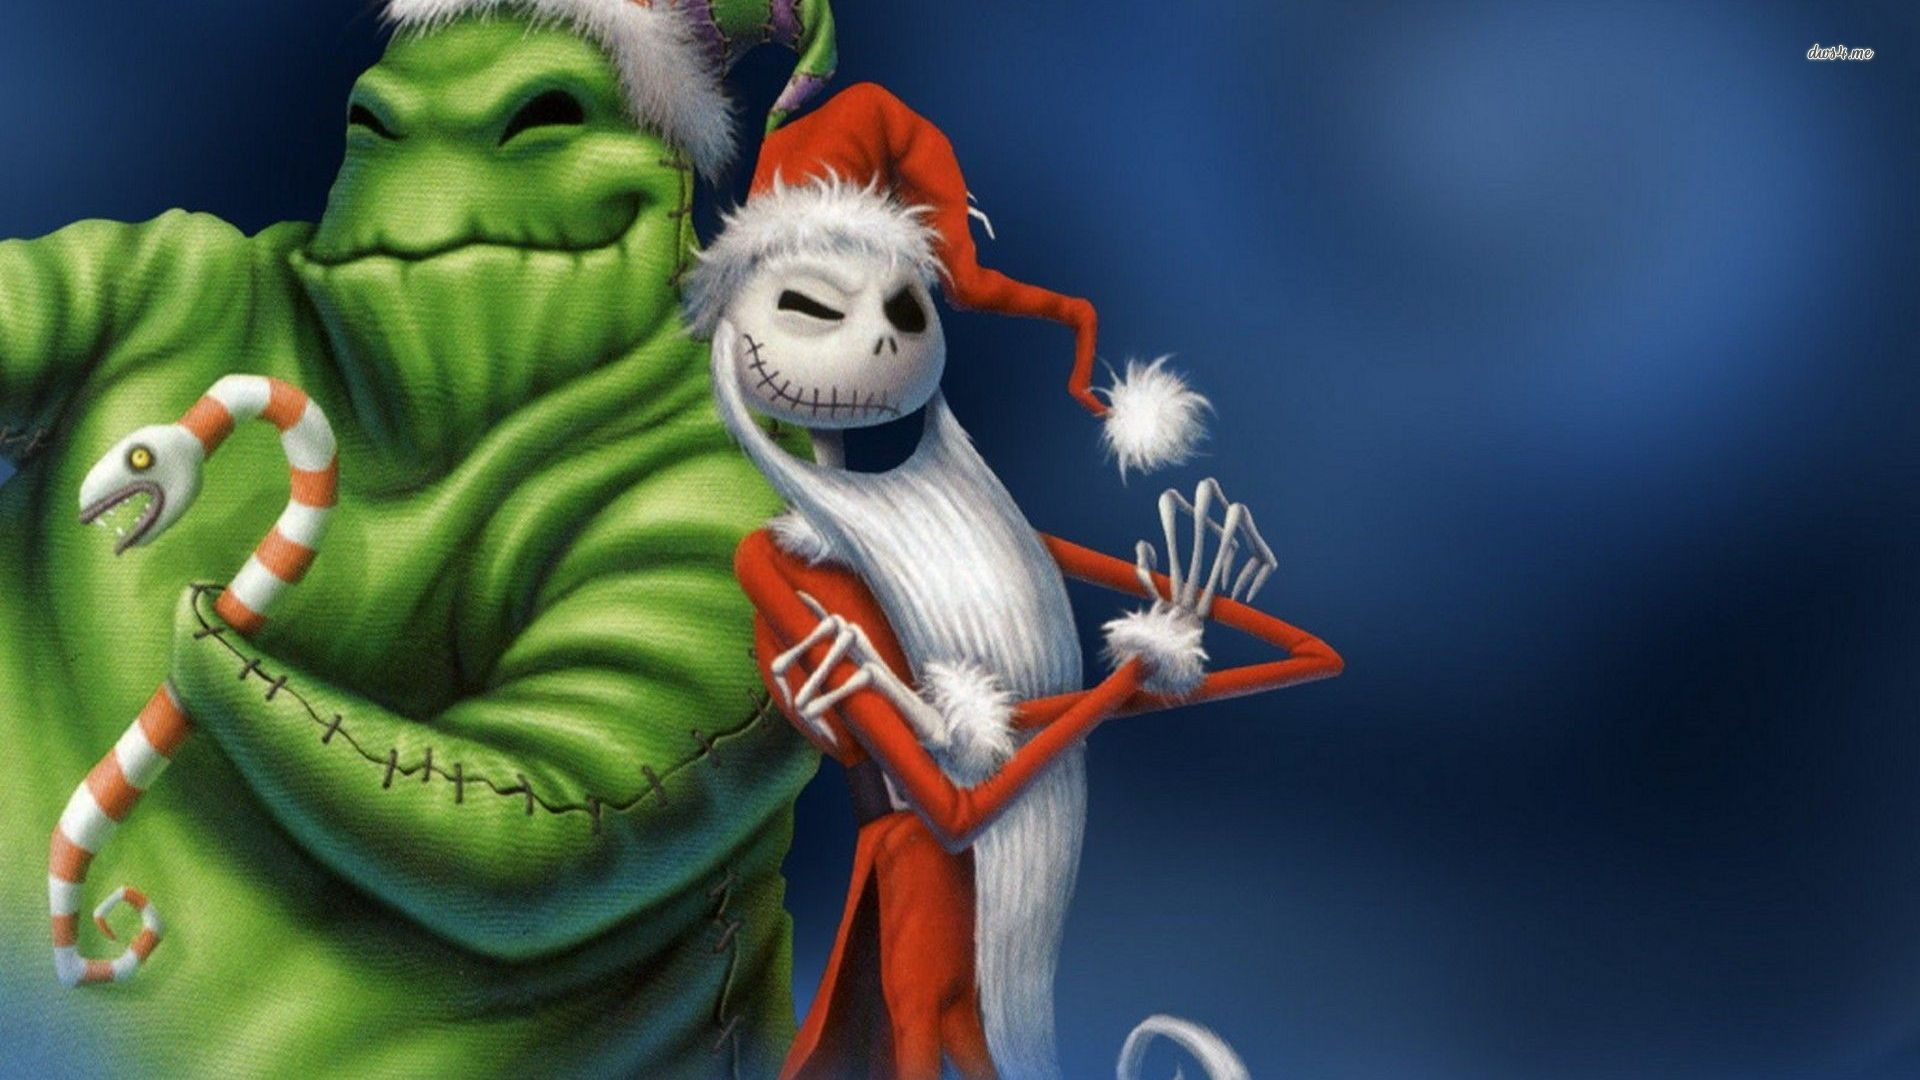 1920x1080 Oogie Boogie And Jack Skellington The Nightmare Before Chr Cartoon Hd  Wallpaper